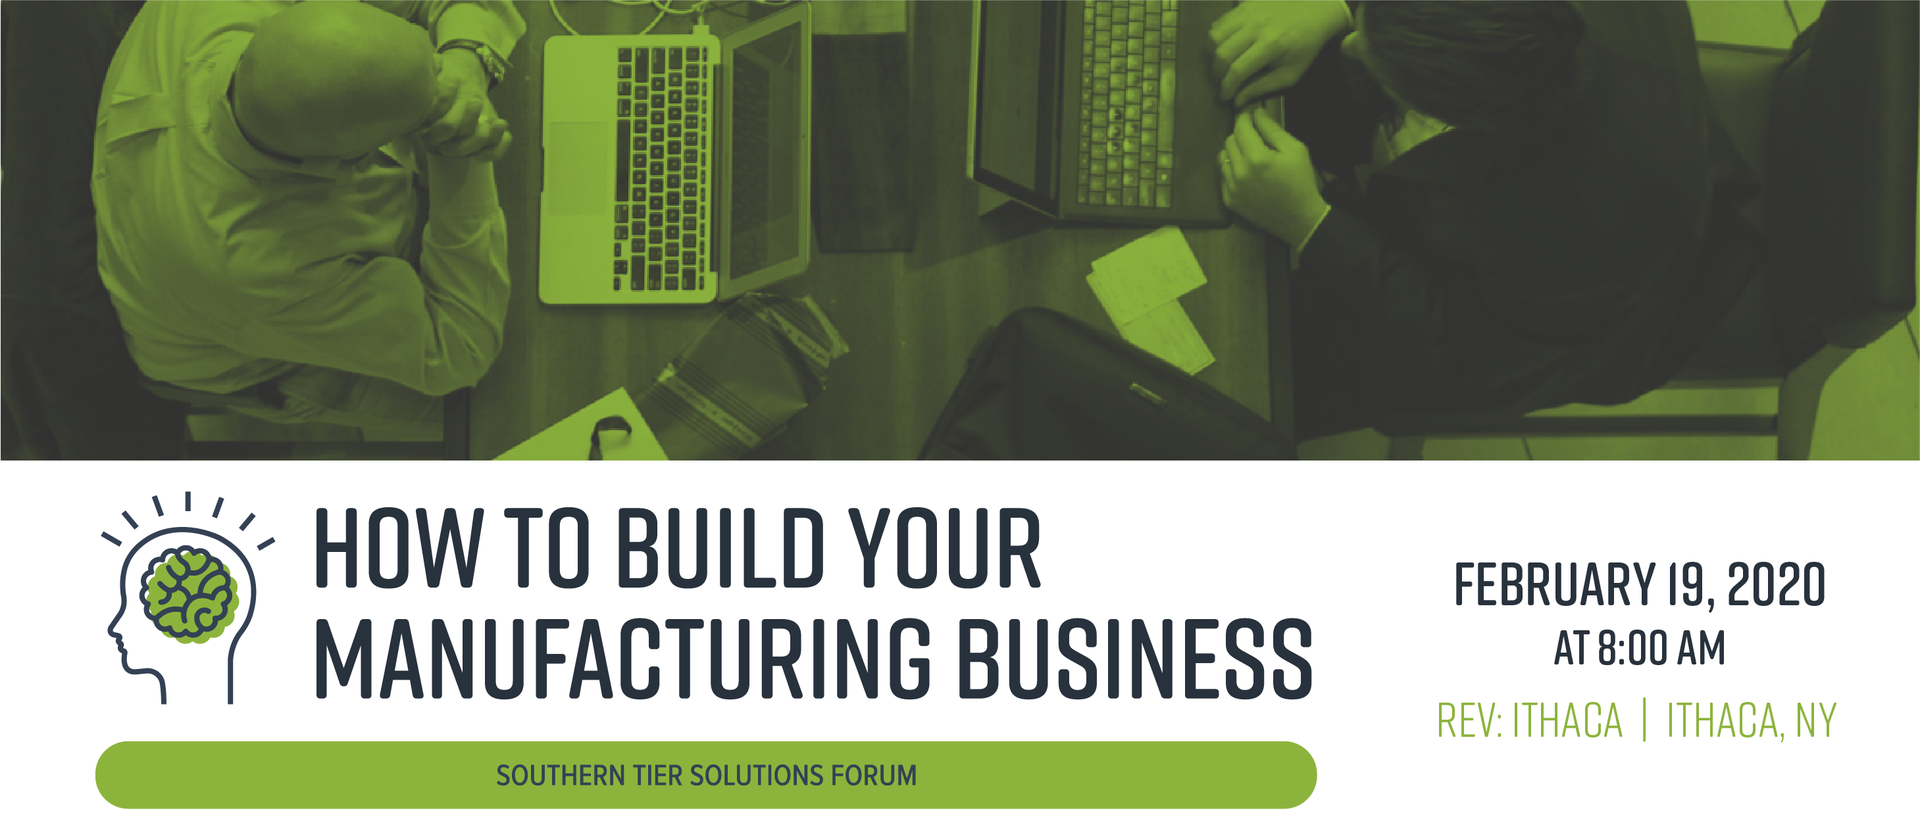 How to build your manufacturing business